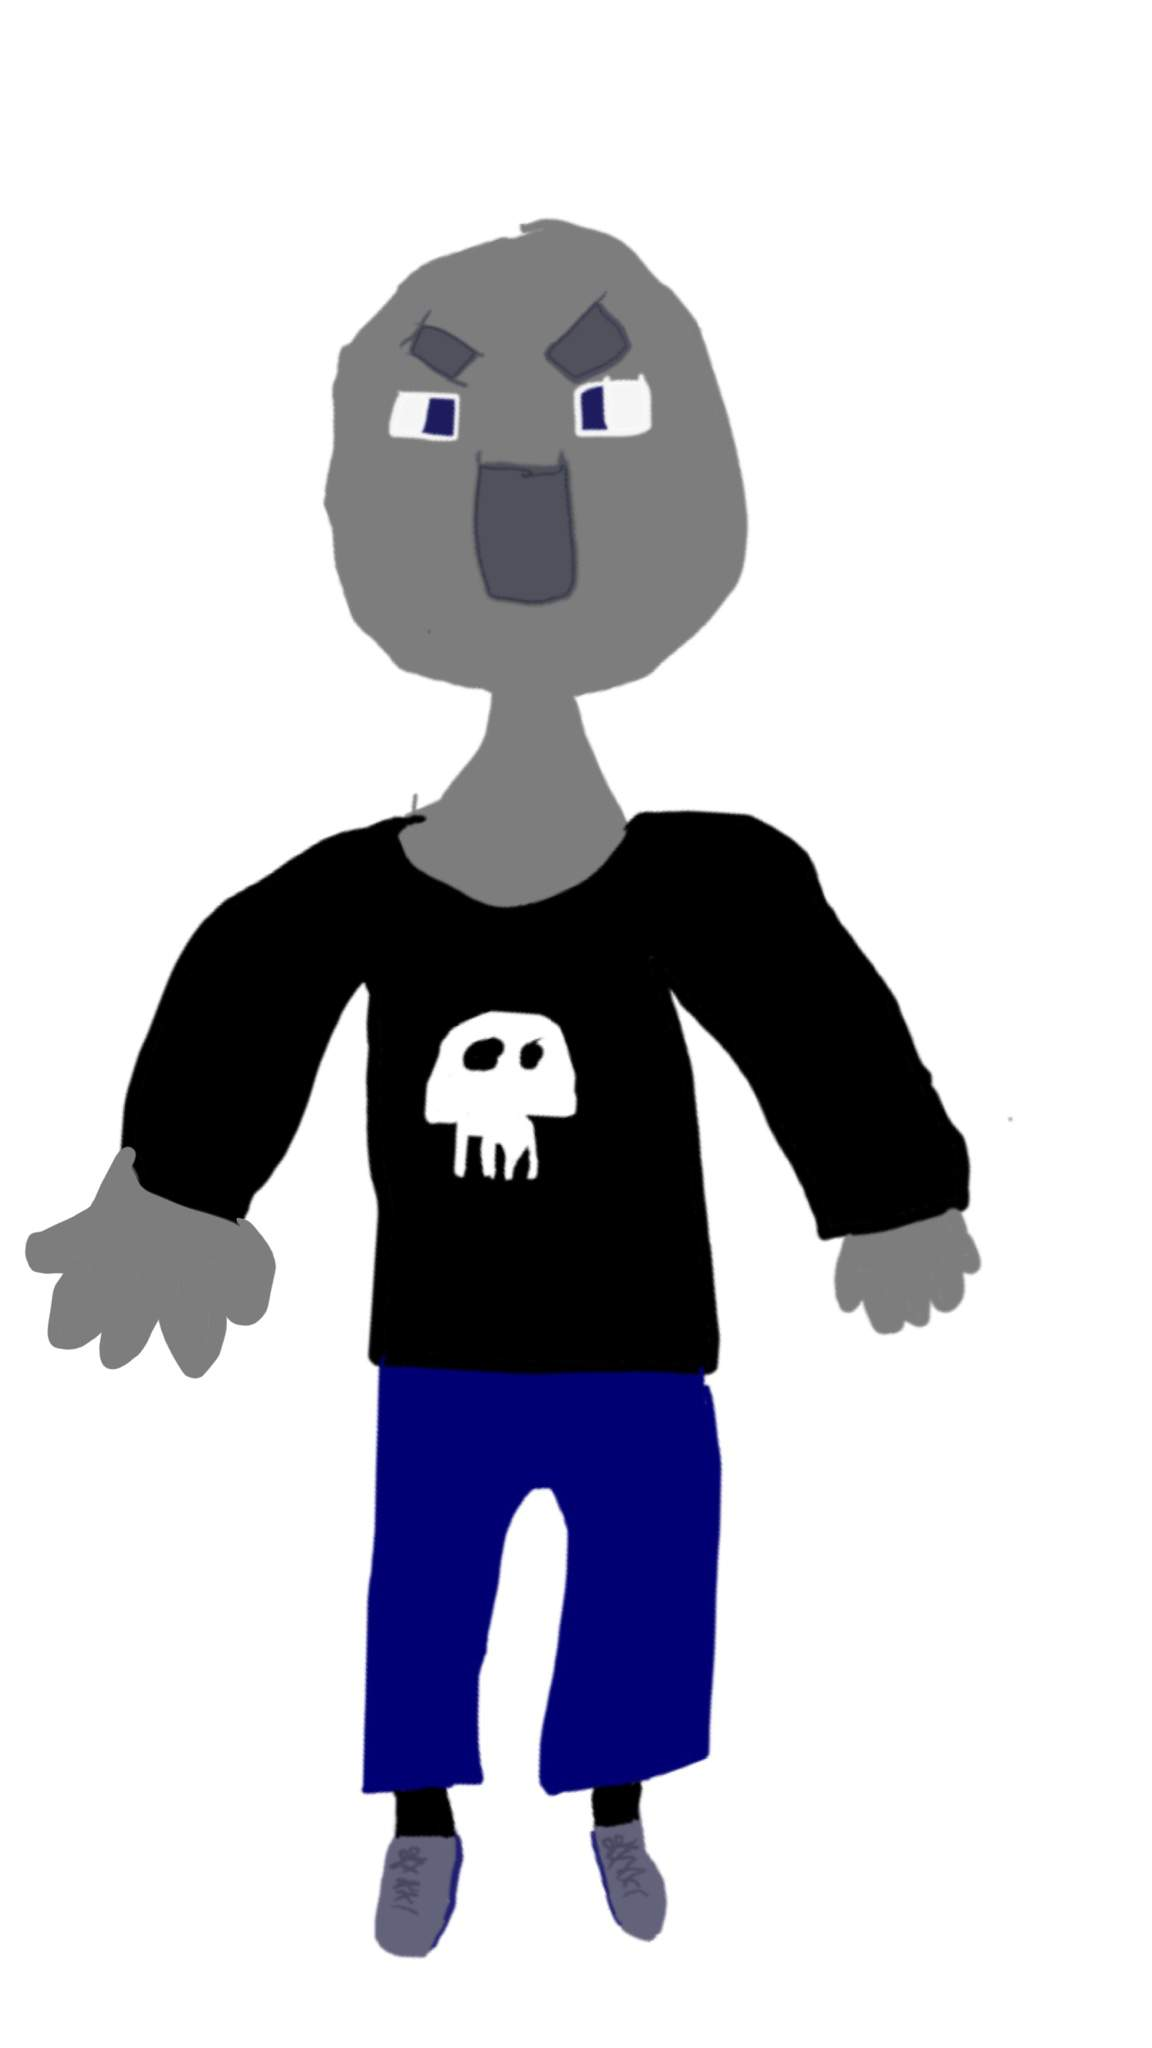 My entry for the humanoid mobs challenge. I made the vindicator